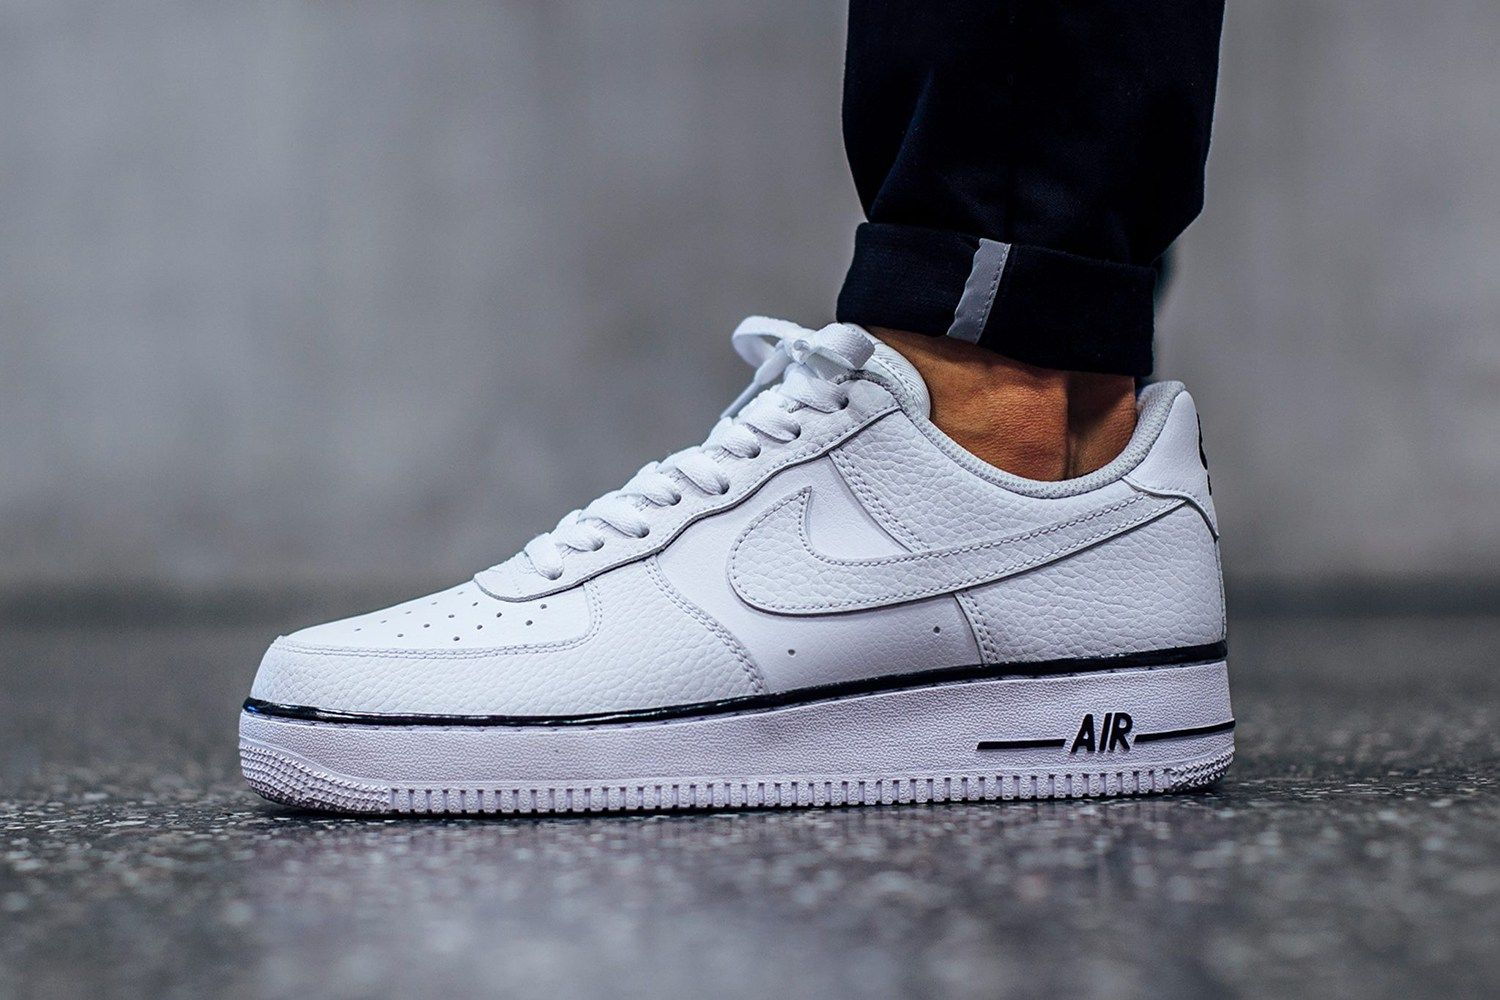 new styles 6d6d4 3de81 Nikes Latest White Air Force One Sports a Dash of Black